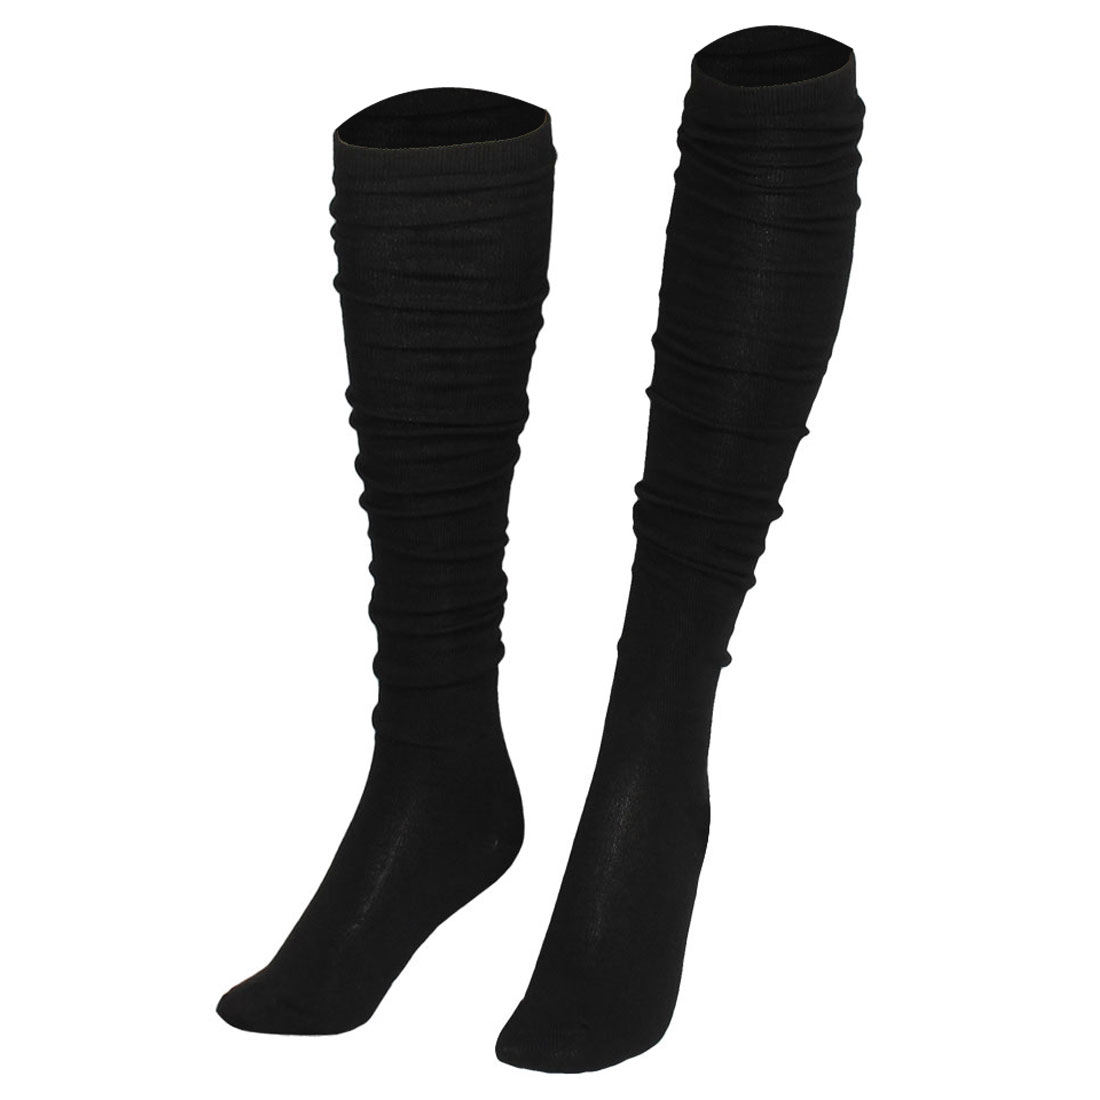 Black Solid Color Fleece Stretchy Thigh High Socks Stockings for Women